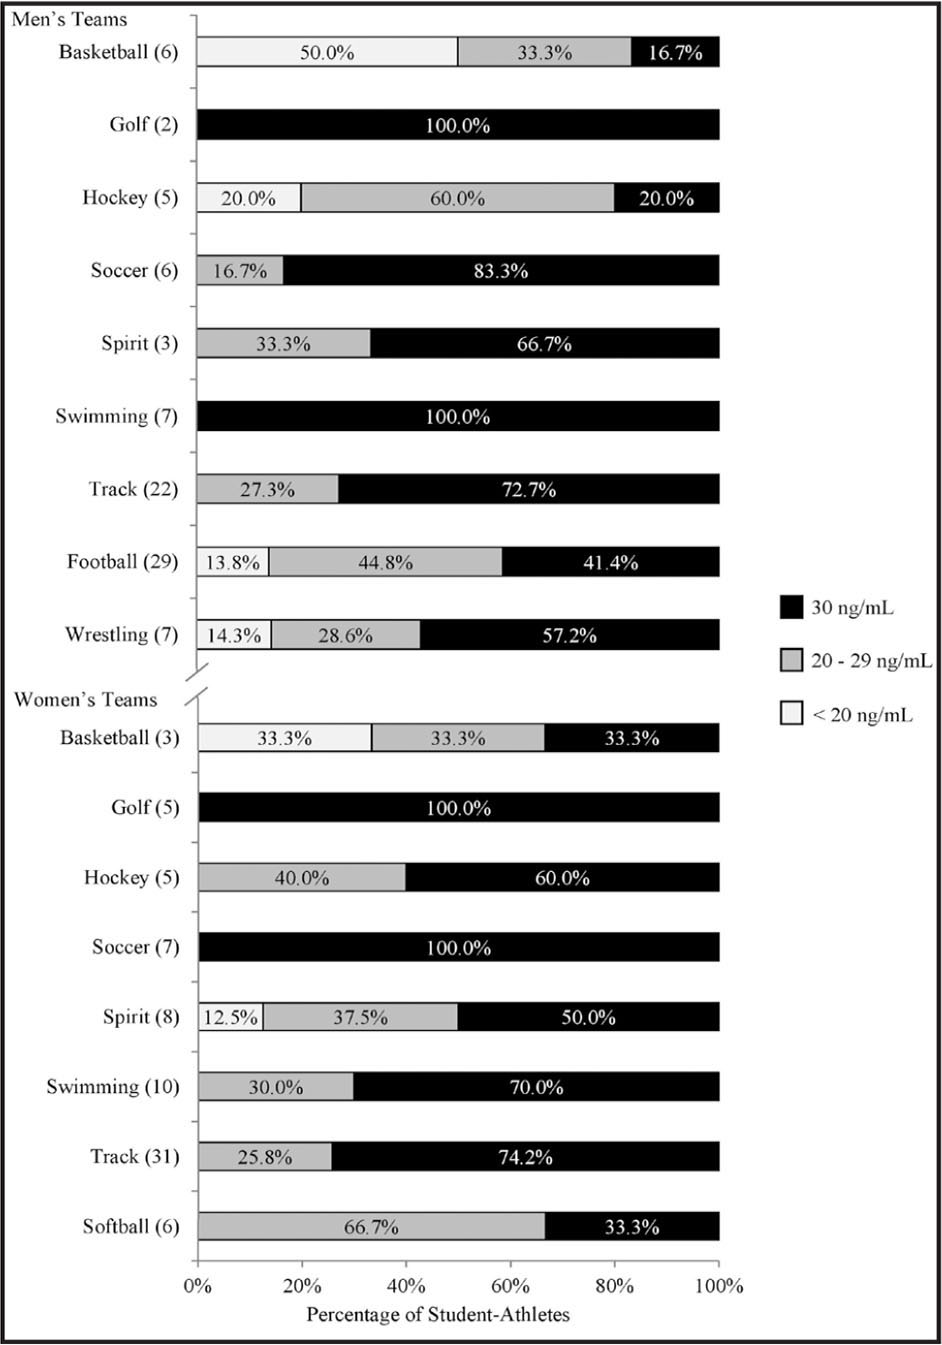 Vitamin D status of incoming student-athletes in their first year of eligibility during the fall season, by team. Number of student-athletes is provided in parentheses. Omitted from the figure were individuals participating in men's tennis (2), women's tennis (1), women's crew (1), and women's volleyball (3) as all had vitamin D levels ≥ 30 ng/mL.